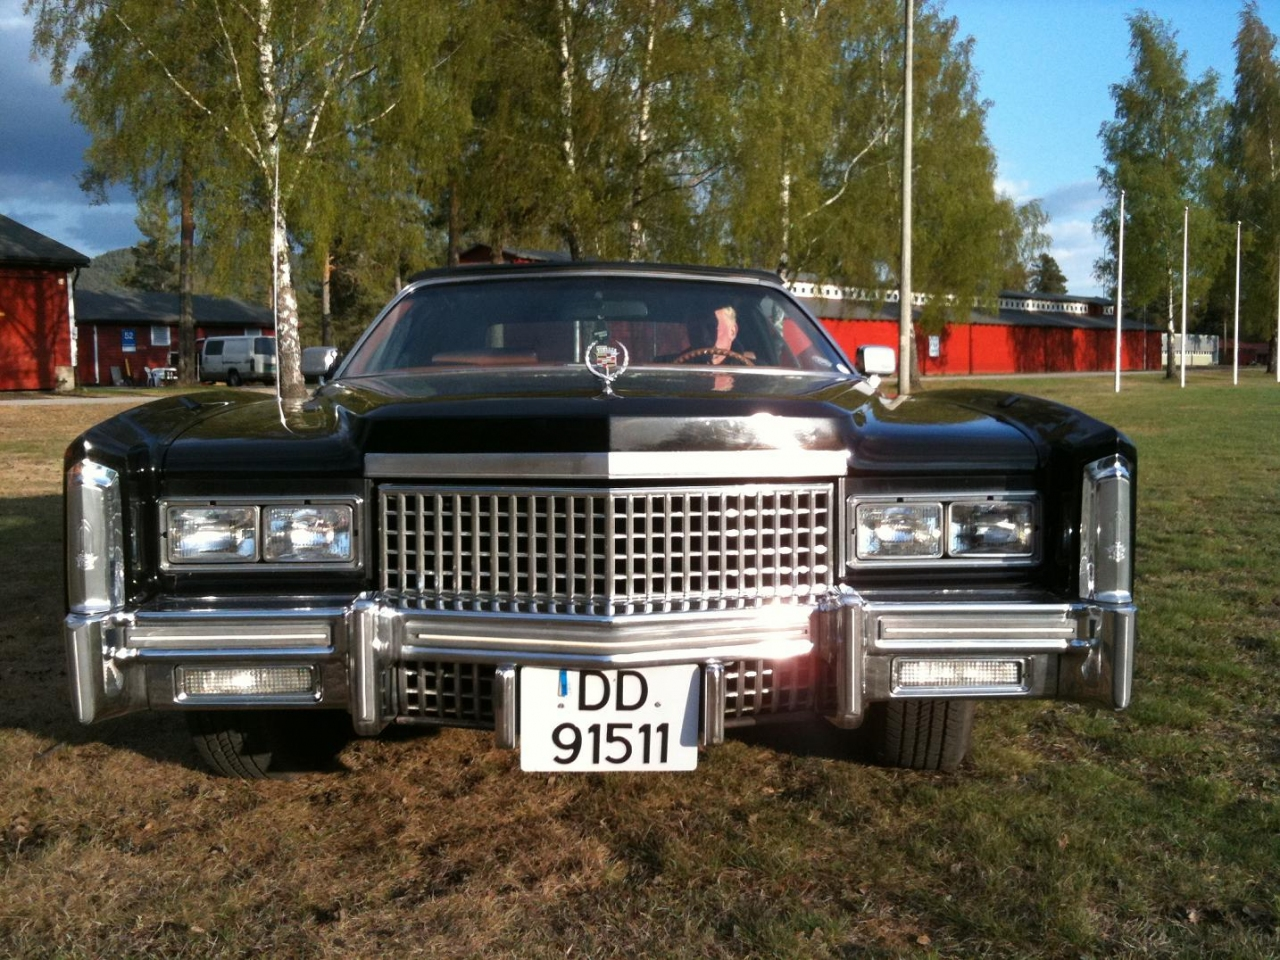 Buick Sport Wagon likewise Buick Riviera American Cars For Sale X X together with Buick Riviera For Sale together with Yvind Eiesland Sin Cougar also Medlemsbiler Vren Ktv. on 1975 buick skylark gs